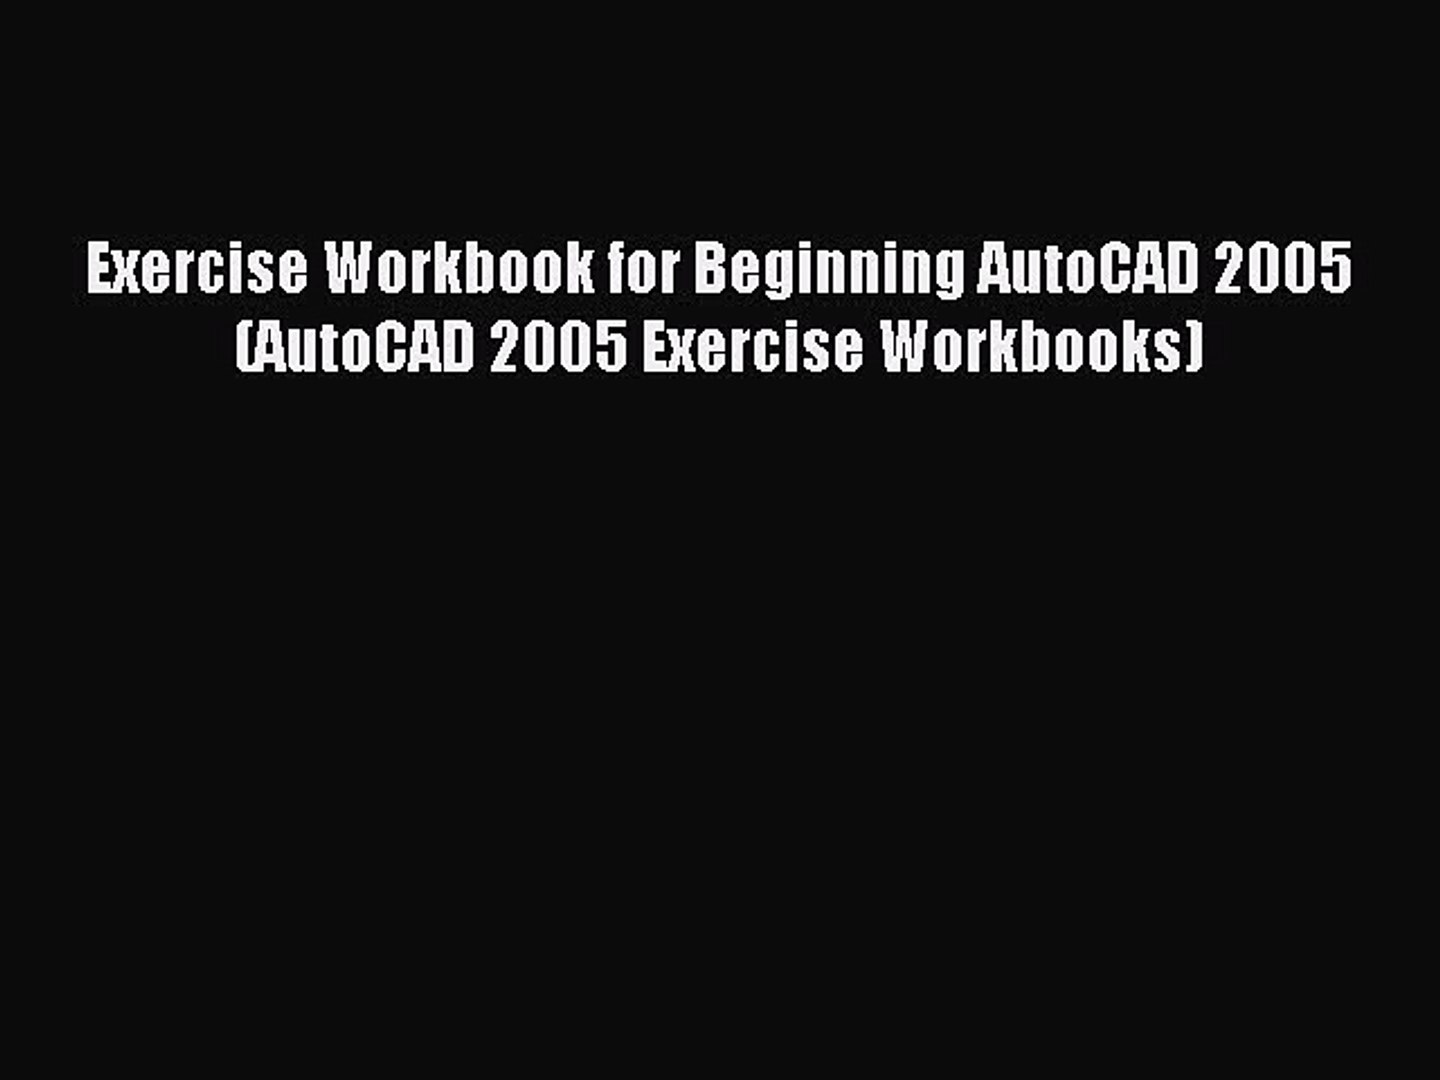 [Read PDF] Exercise Workbook for Beginning AutoCAD 2005 (AutoCAD 2005 Exercise Workbooks) Download